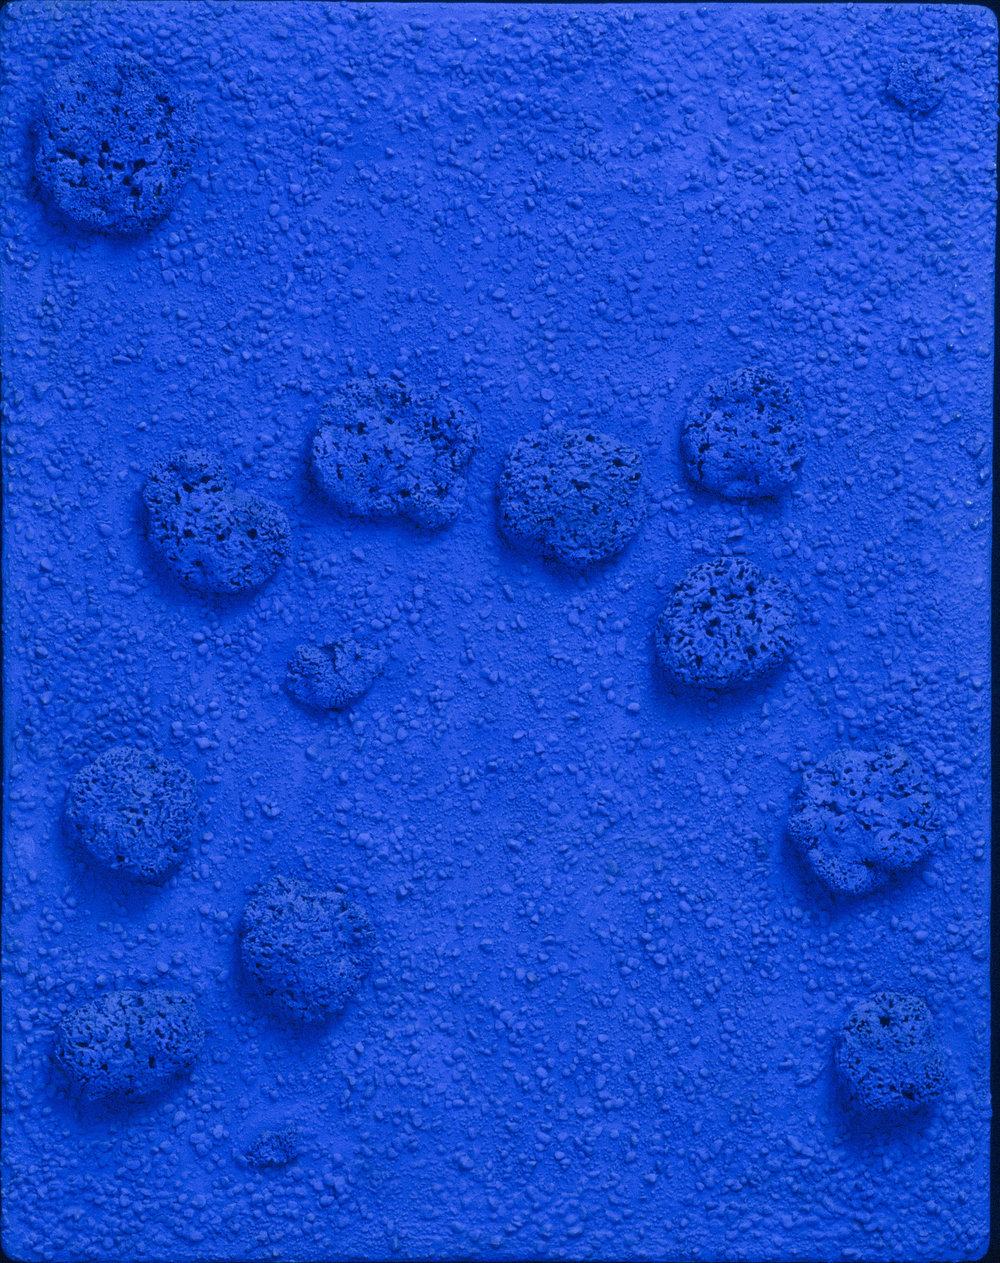 Blue Monochrome Sponge Relief (RE24)  , 1960 Yves Klein, French, 1928-1962 Sponges, pebbles, dry pigment in synthetic resin on wood board 57 1/4 x 45 3/8 x 3 3/4 in. (145.4 x 115.3 x 9.5 cm) Gift of Mr. and Mrs. Joseph H. Hazen, P.961.288 © 2017 Yves Klein /ADAGP, Paris; Artists Rights Society (ARS), NY